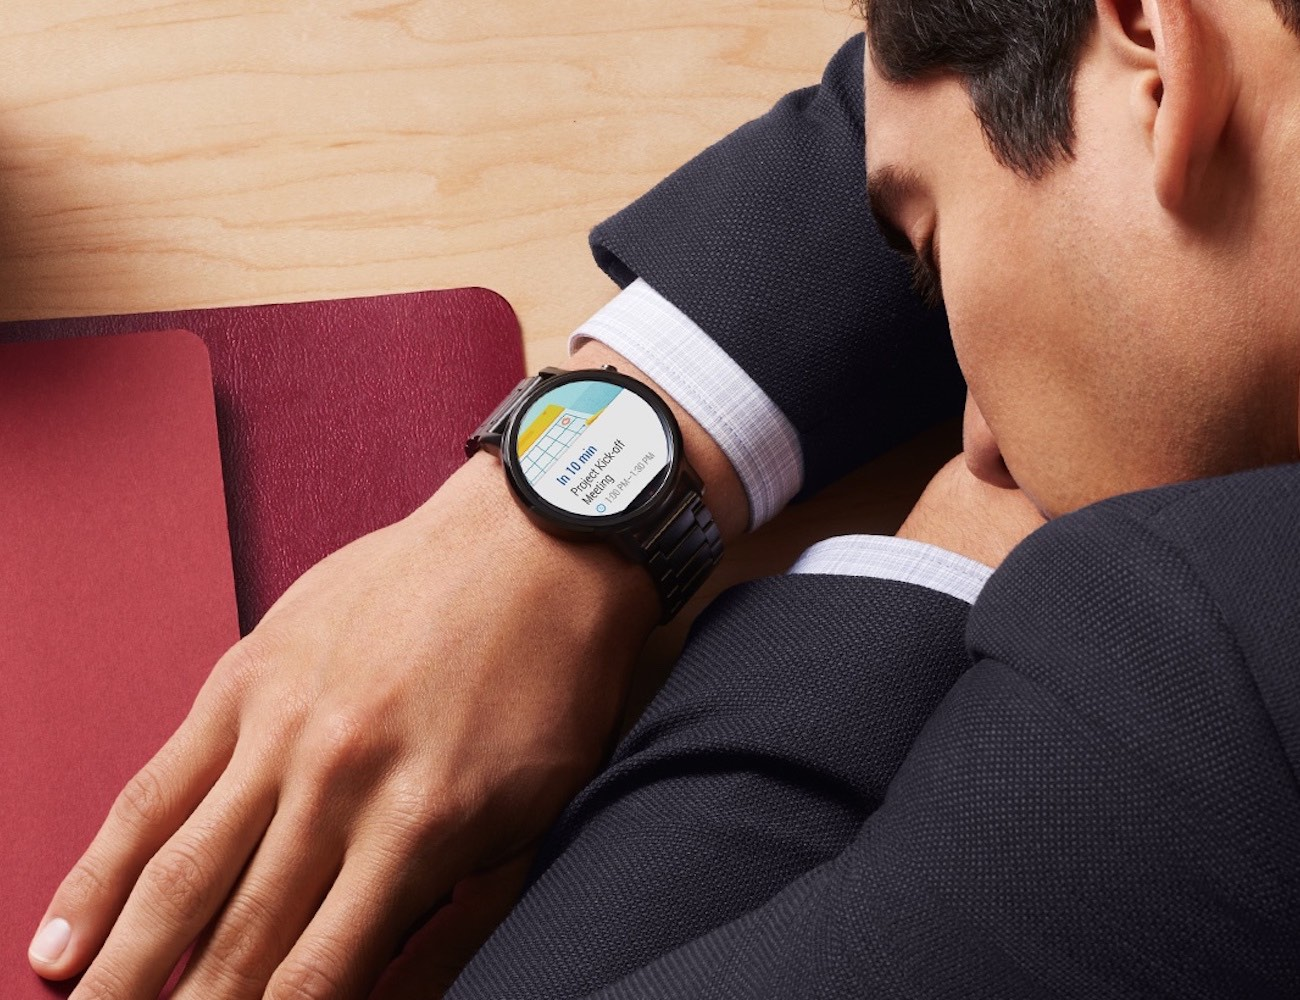 motorola-2nd-generation-moto-360-smartwatch-02